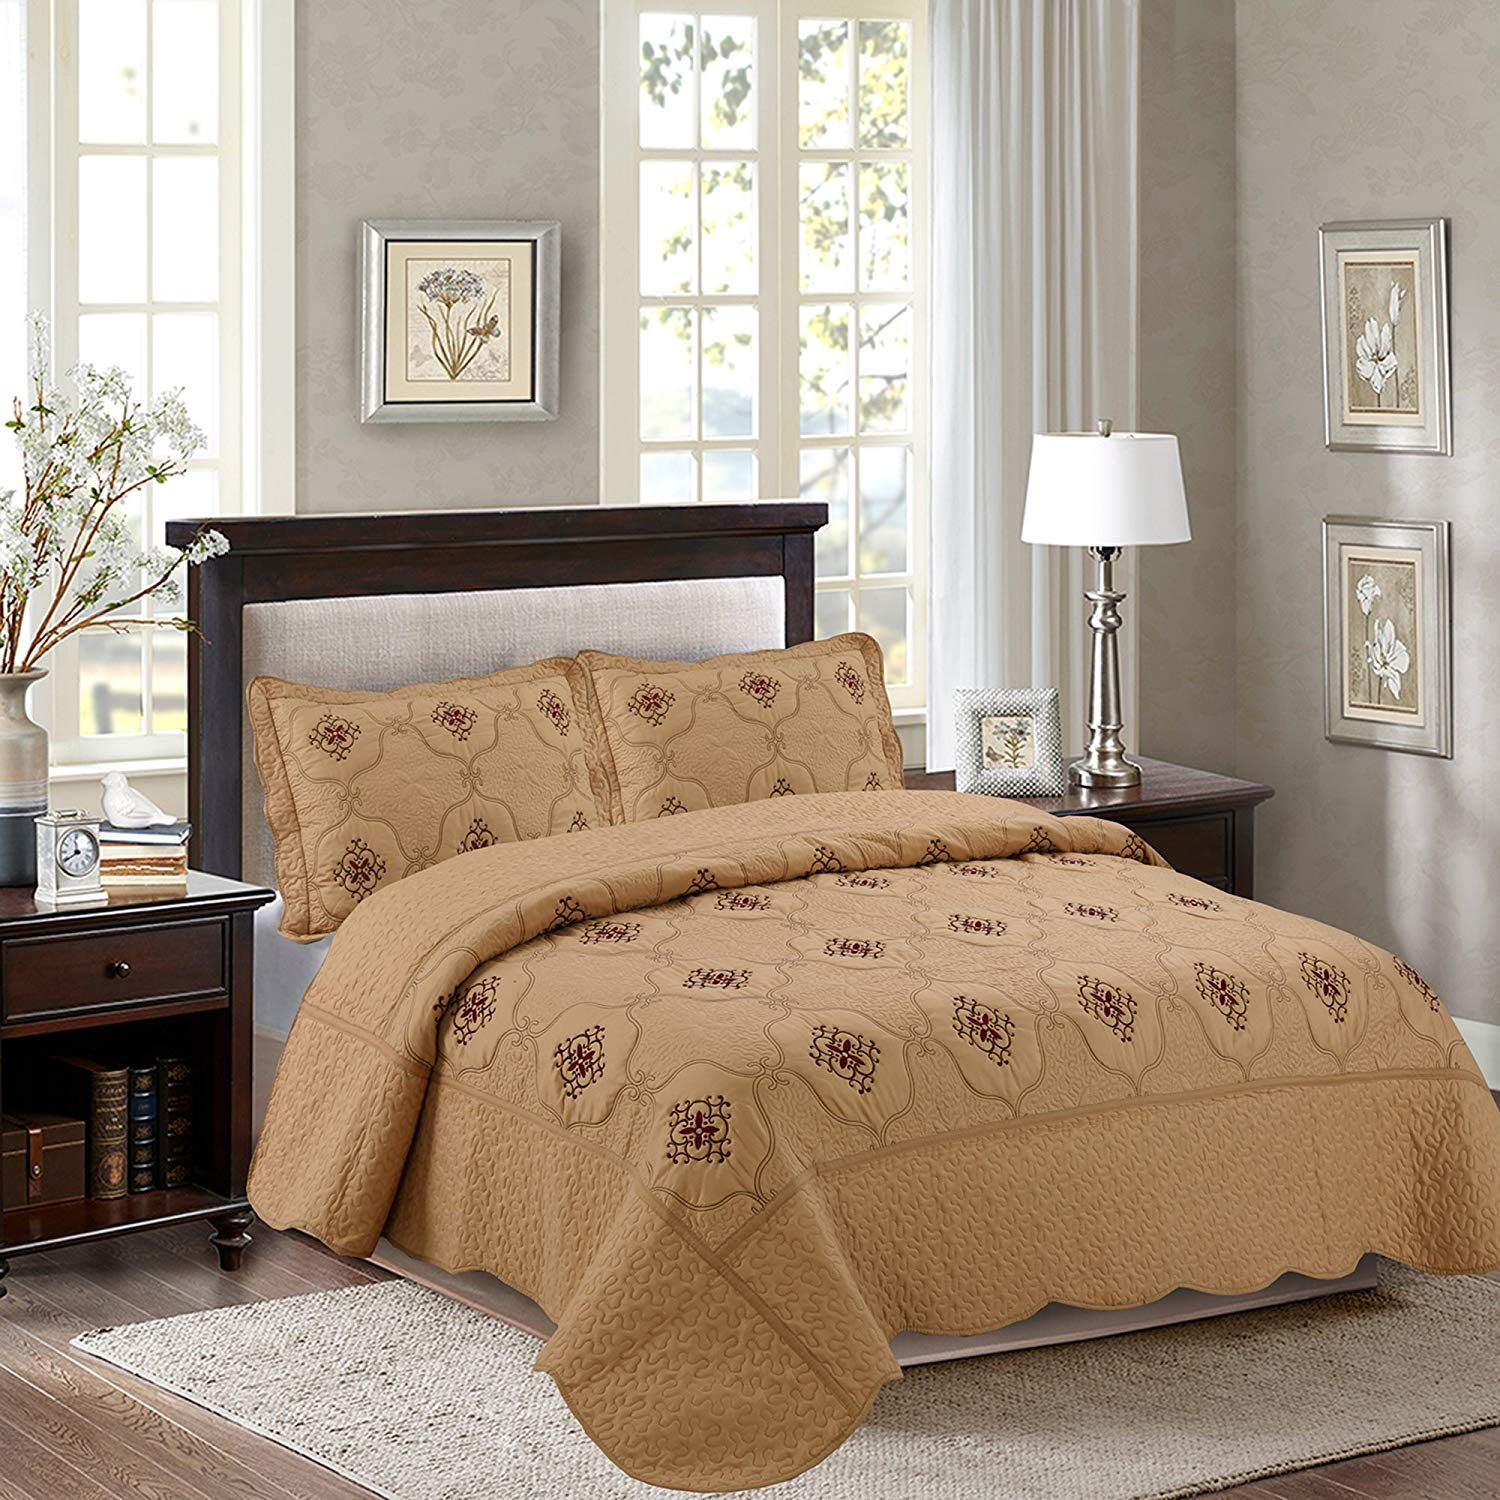 MarCielo 3-Piece Fully Quilted Embroidery Quilts Bedspreads Bed Coverlets Cover Set, Burgundy, Brown, Emma(Queen Size, Taupe)